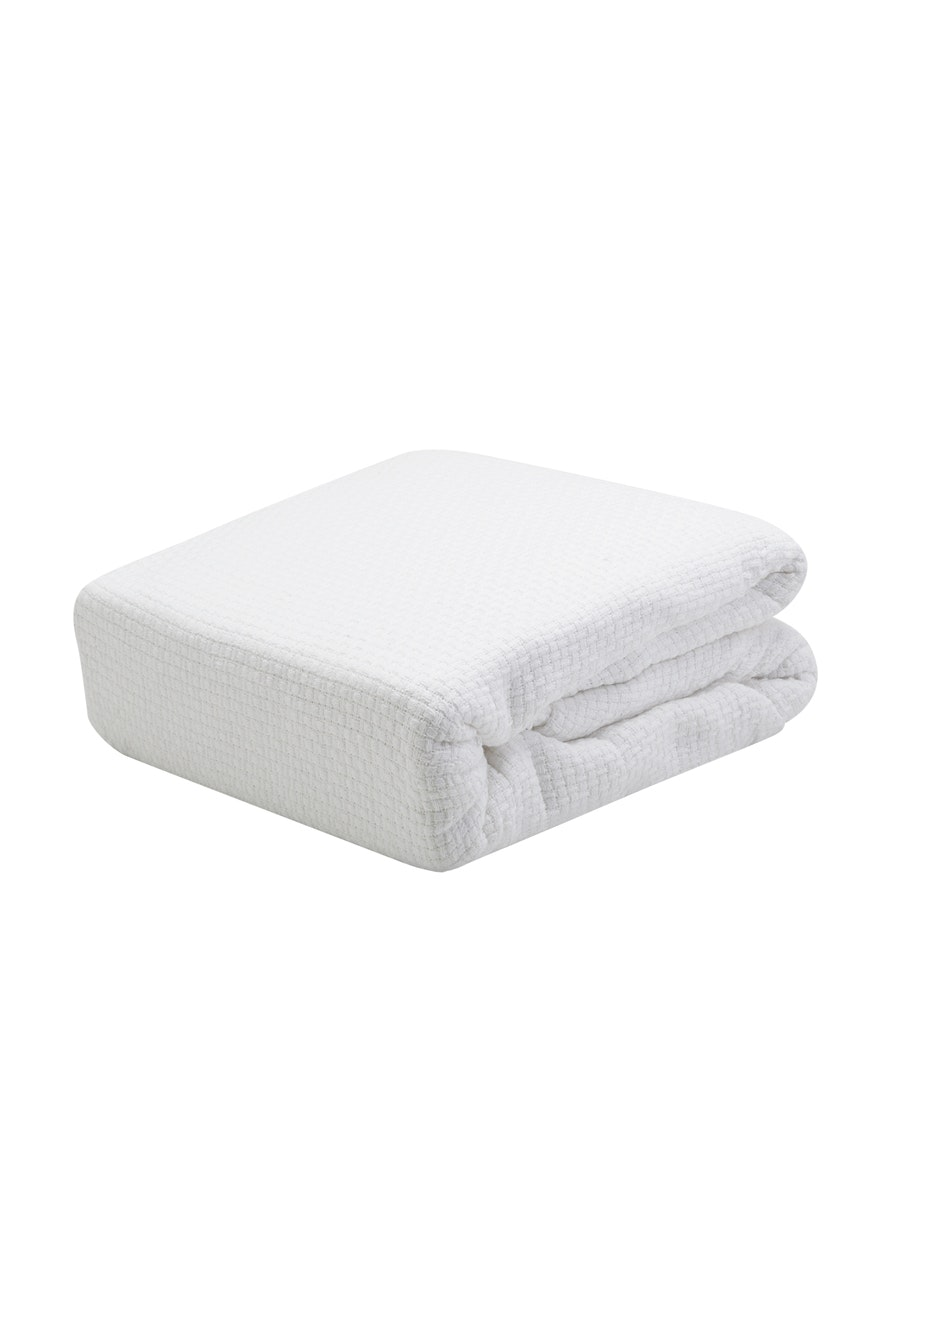 Pebble Weave Cotton Blanket - White - Queen/King